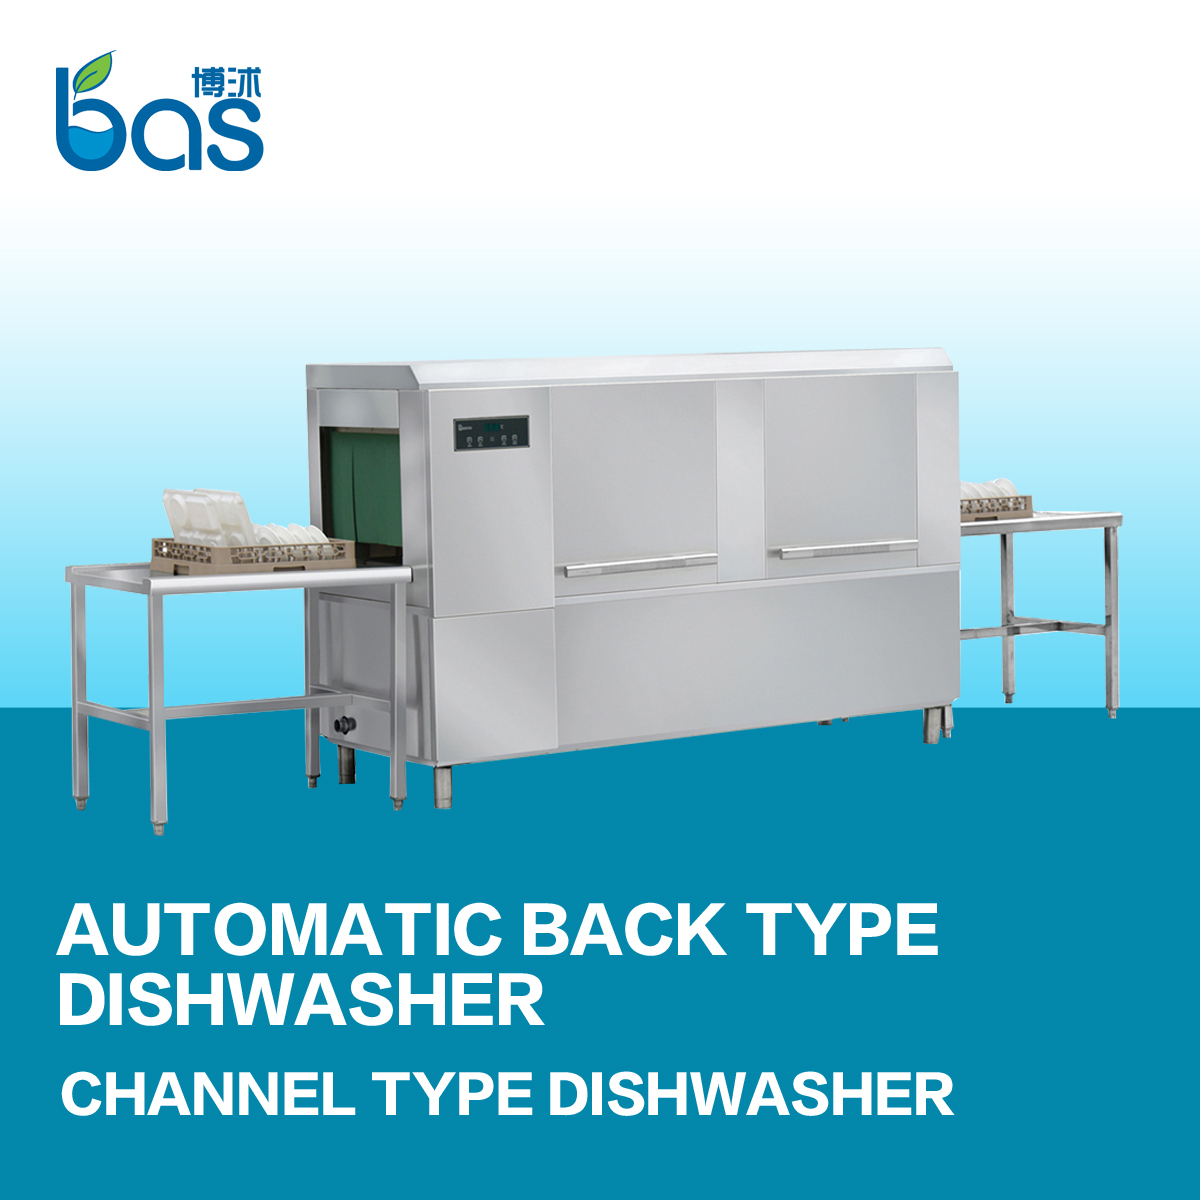 BS360A Rack Conveyor dishwasher